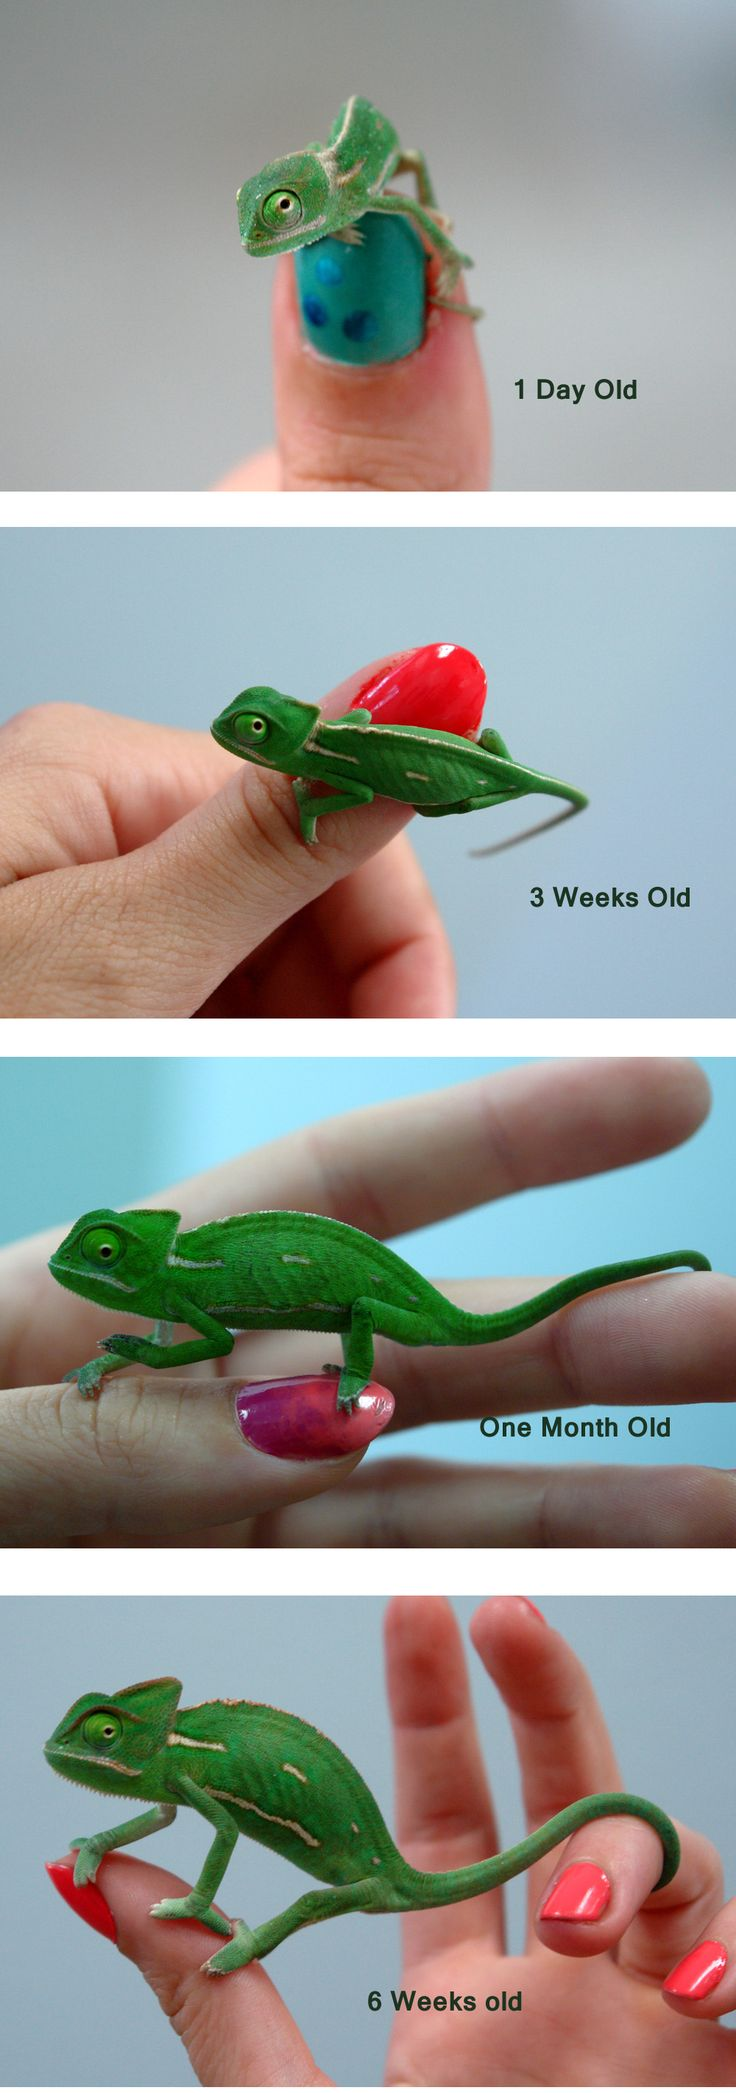 25 amazing chameleon pictures - Baby Veiled Chameleon S Growth Over 6 Weeks Ask Us About How We Set Up Our